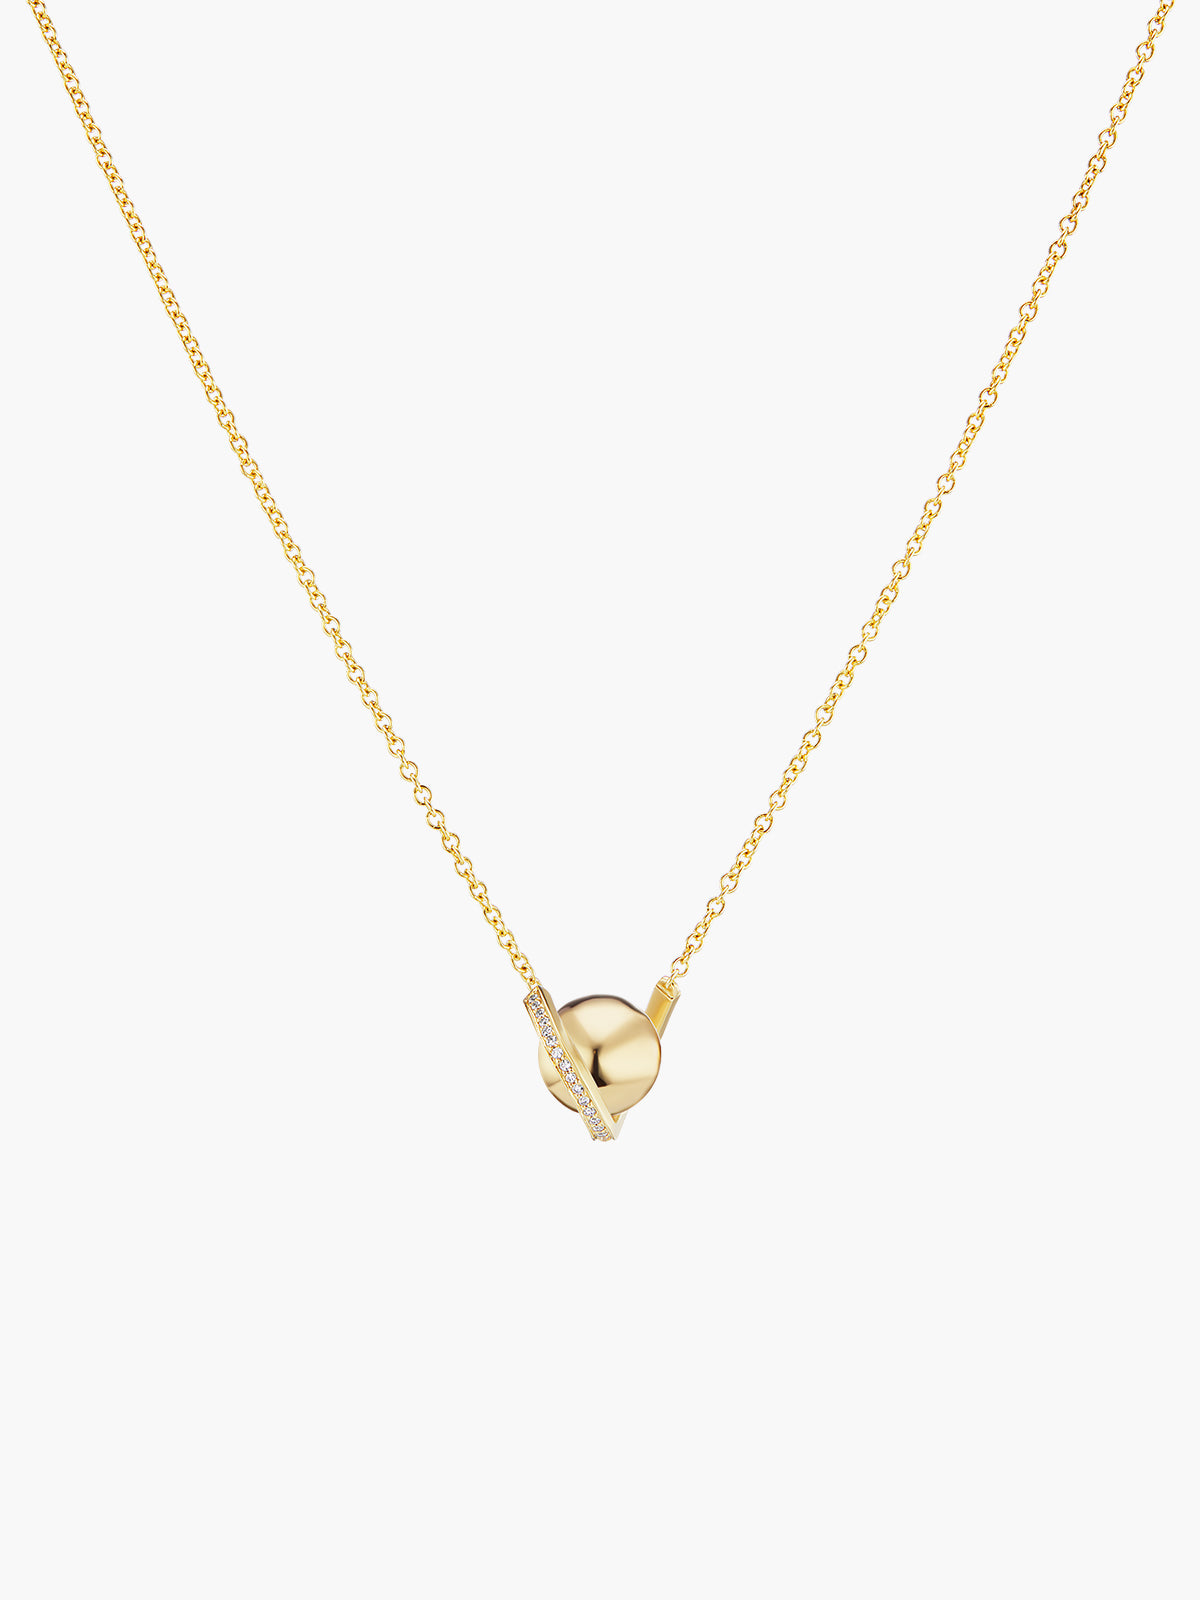 Boule D'Or Solitaire Pendant | High Polish